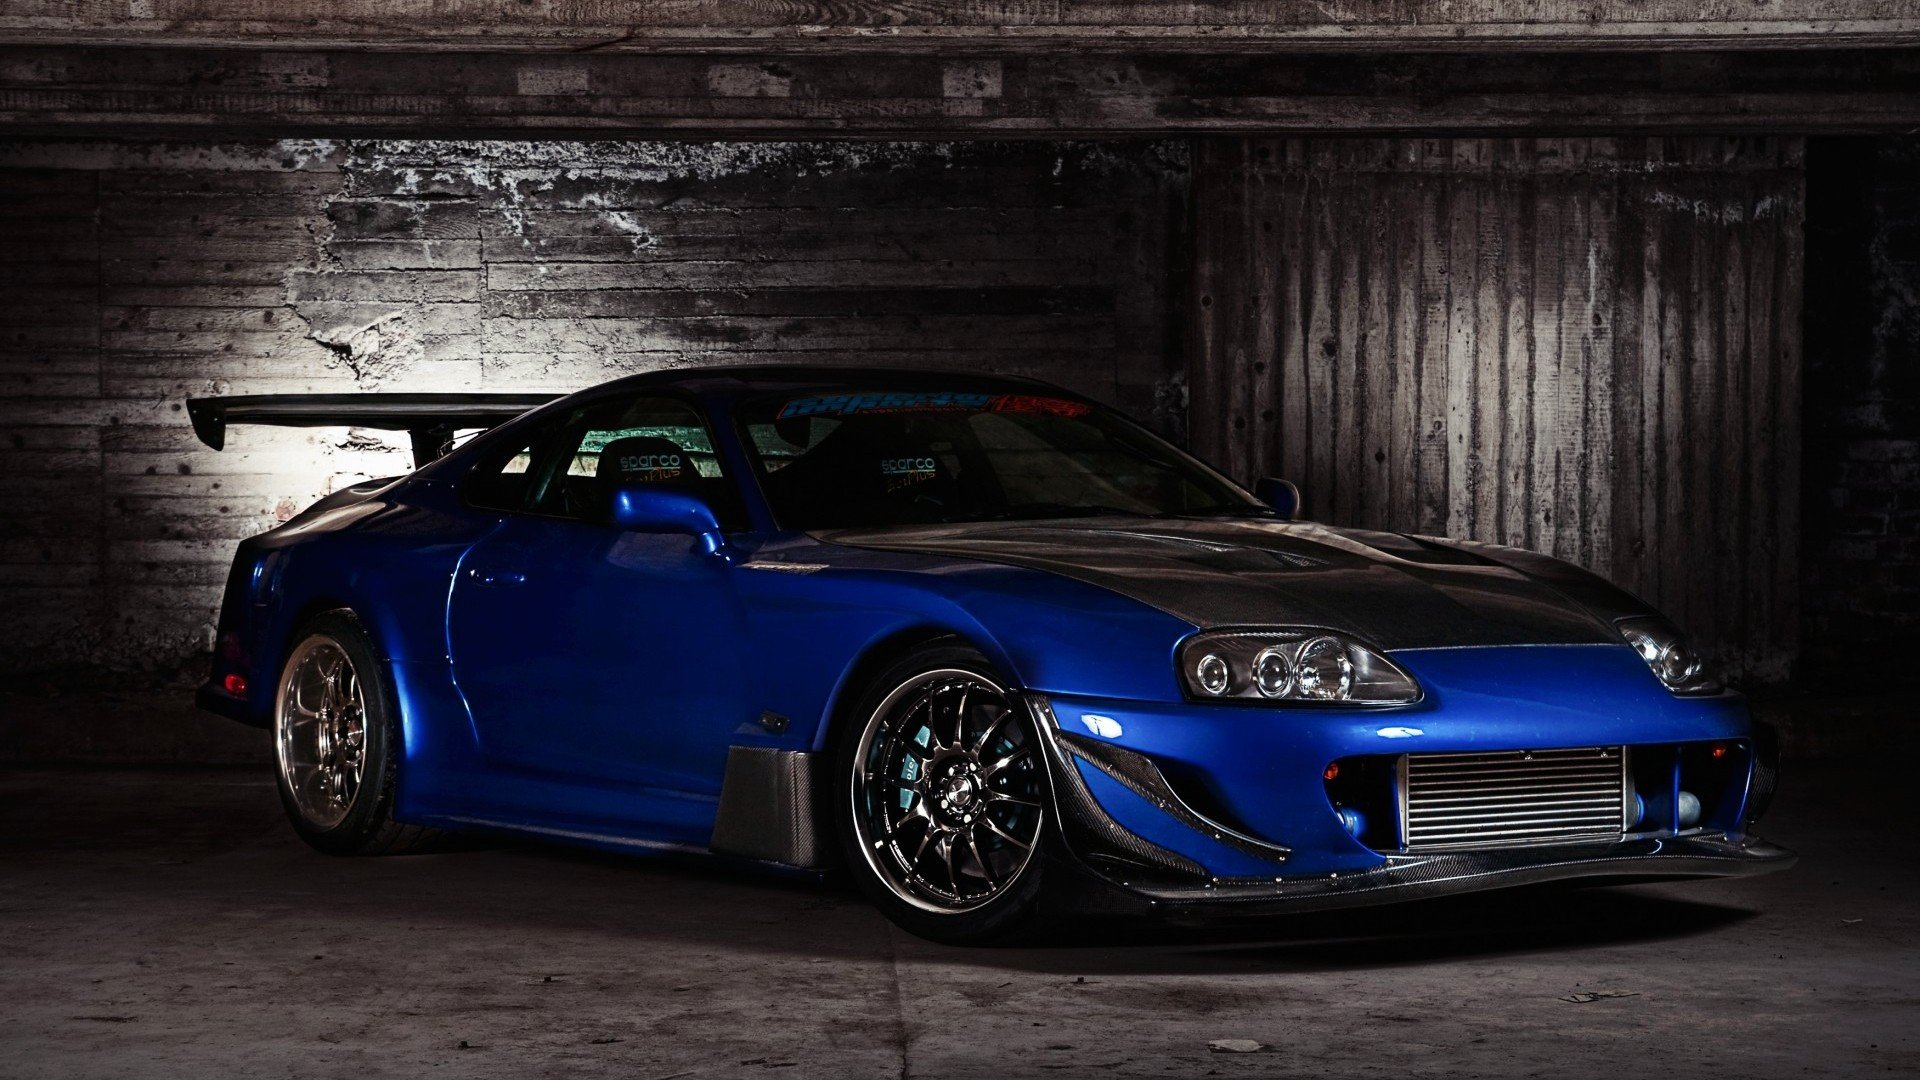 tuning Toyota Supra spoiler sports car Toyota Supra Turbo wallpaper 1920x1080